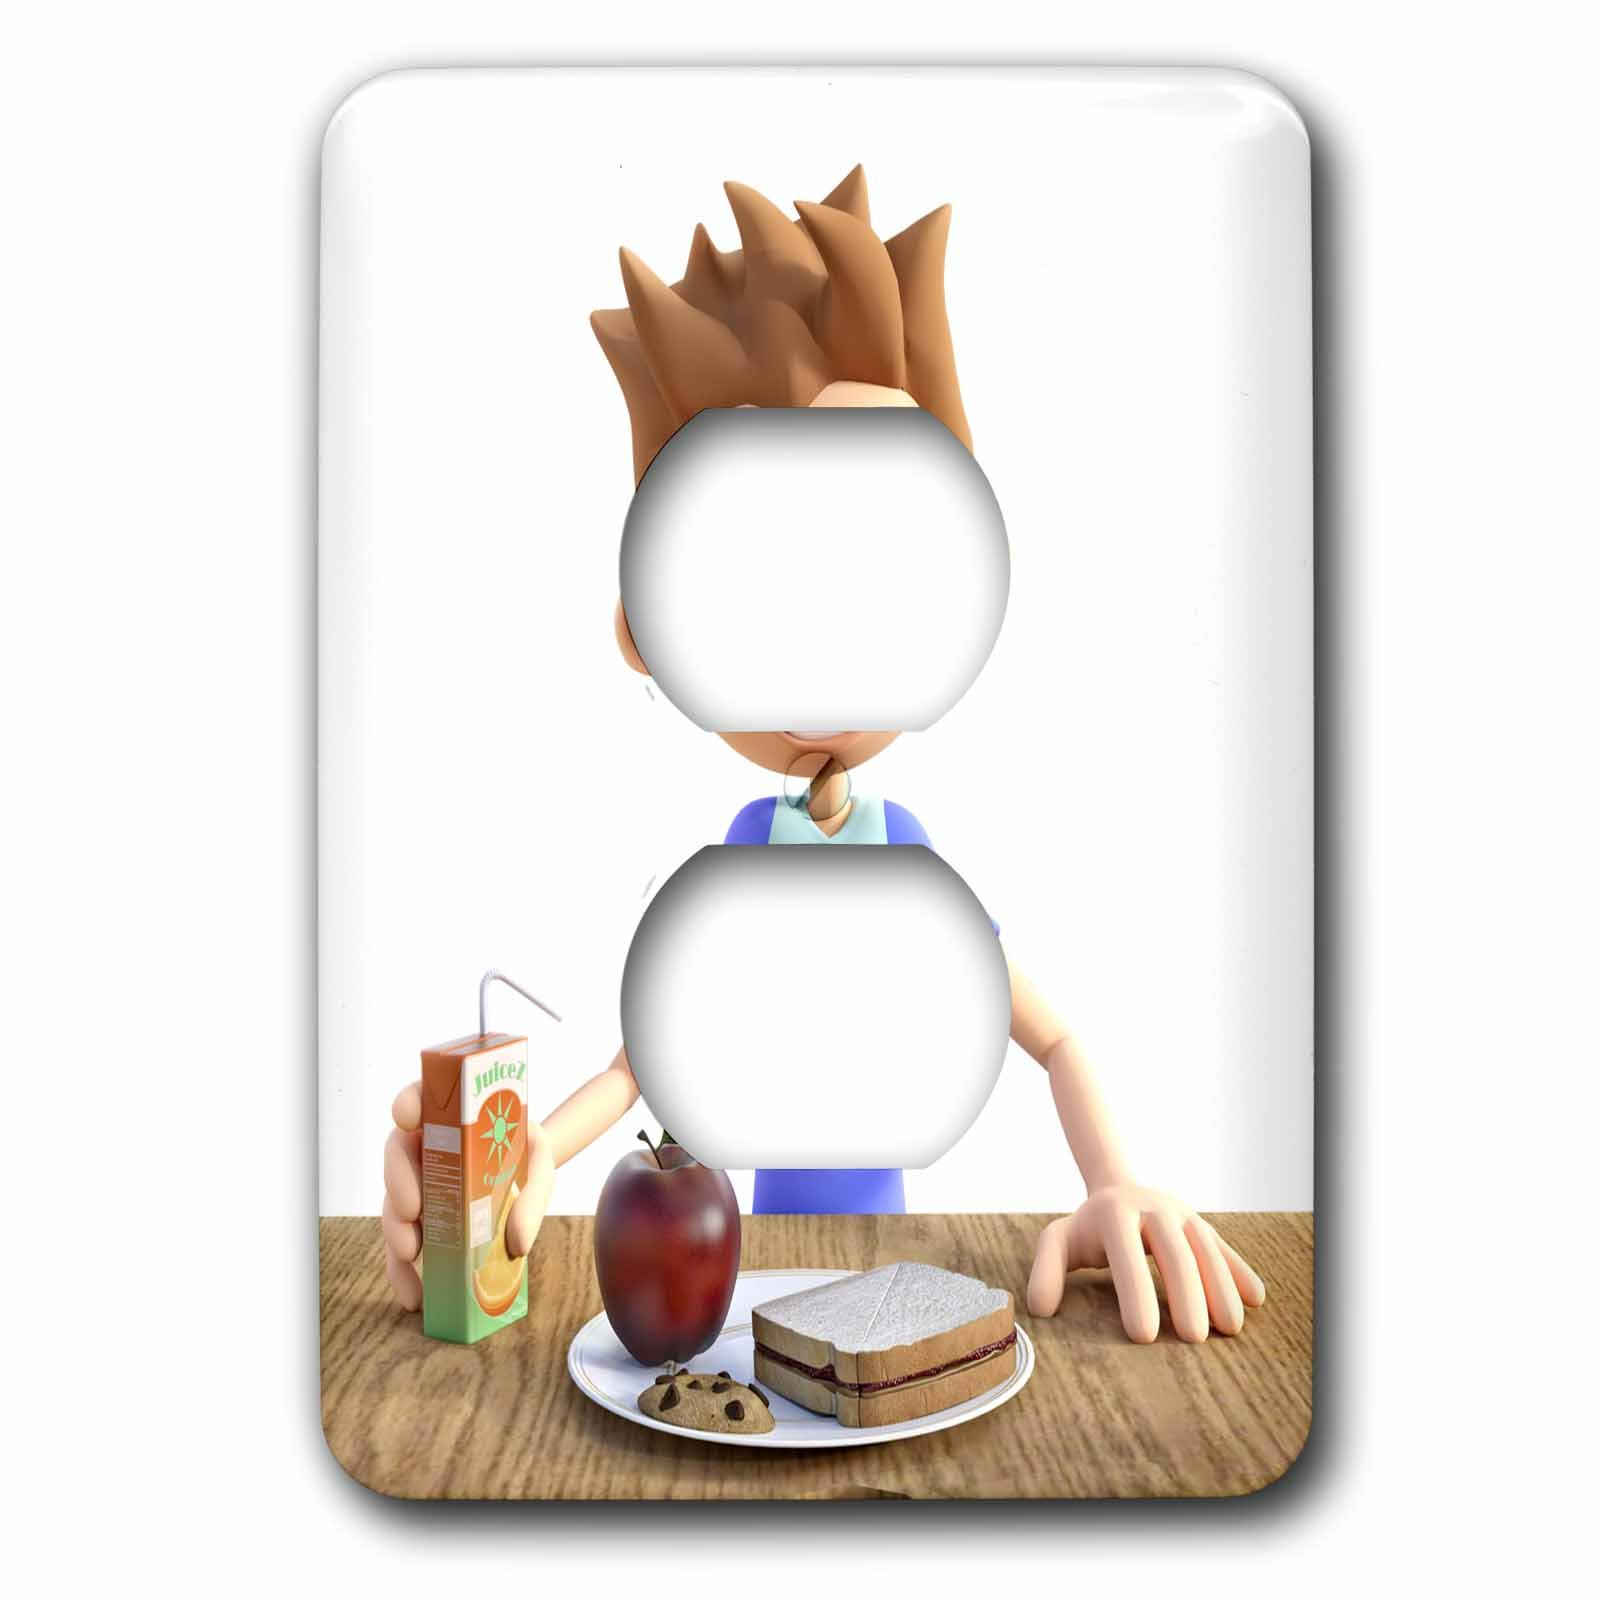 3dRose Boehm Graphics Cartoon - A Cartoon Boy with His School Lunch - Light Switch Covers - 2 plug outlet cover (lsp_282397_6)